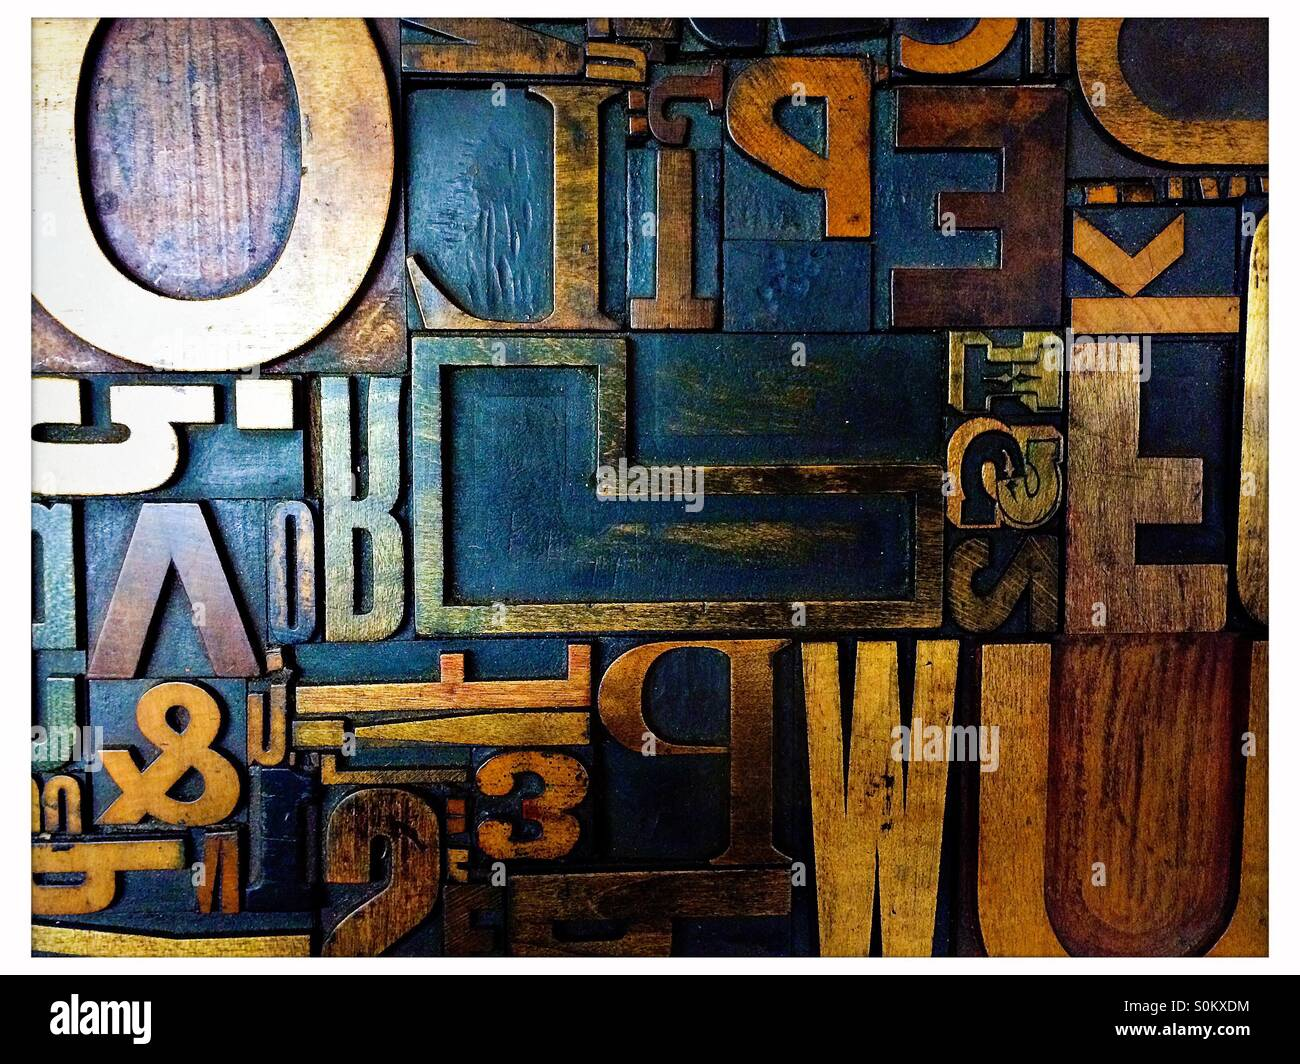 Old print letters on wood - Stock Image